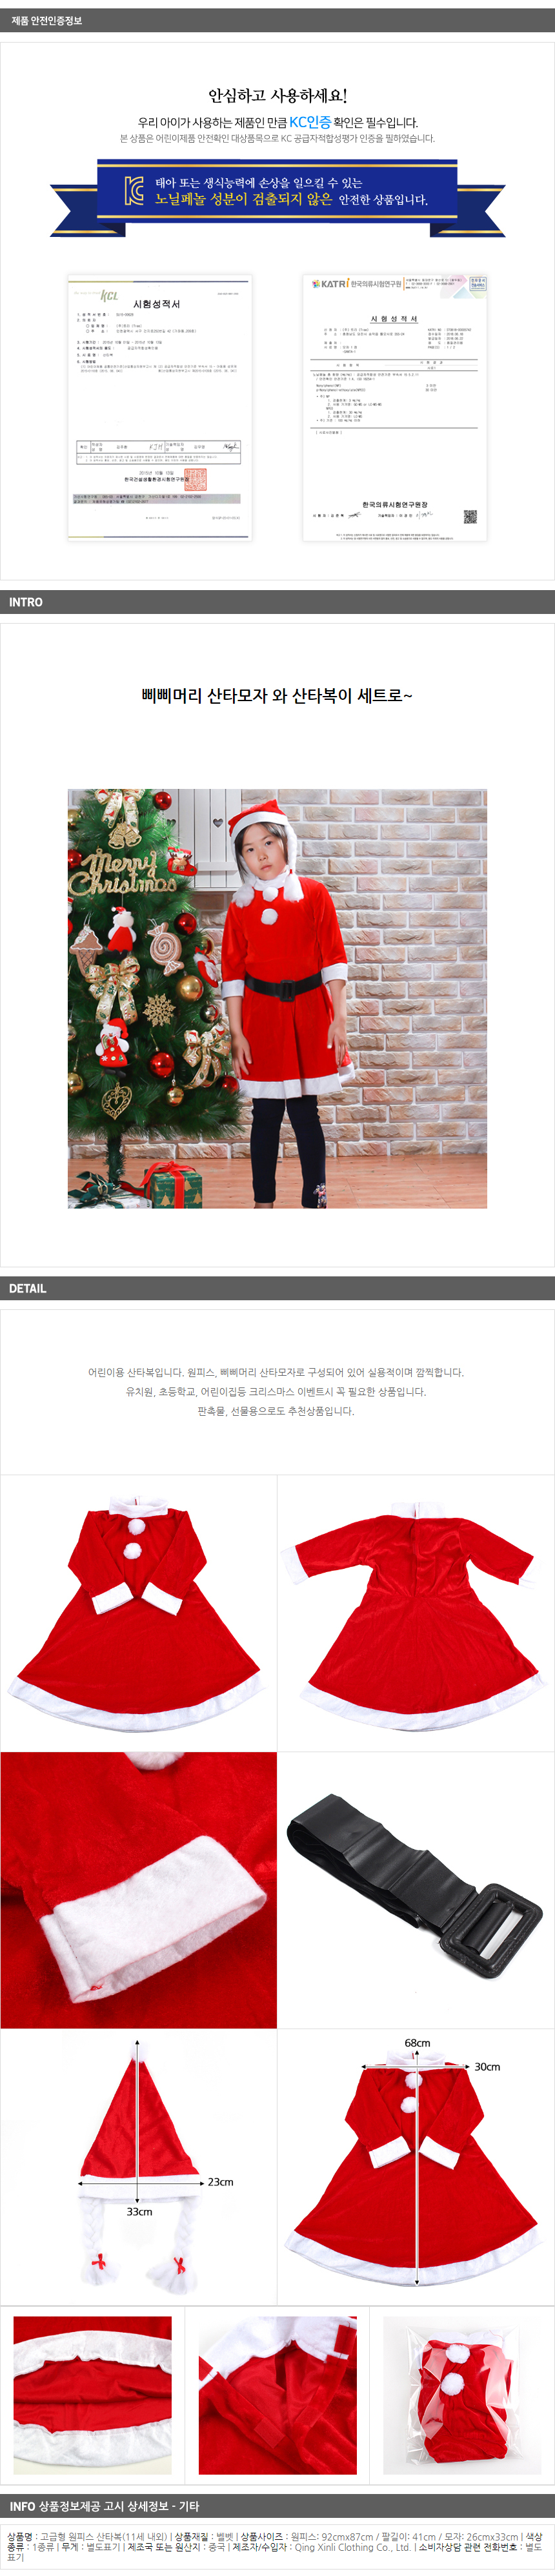 [ WINEQOK ] Christmas Goods / High-grade dress Inside and out